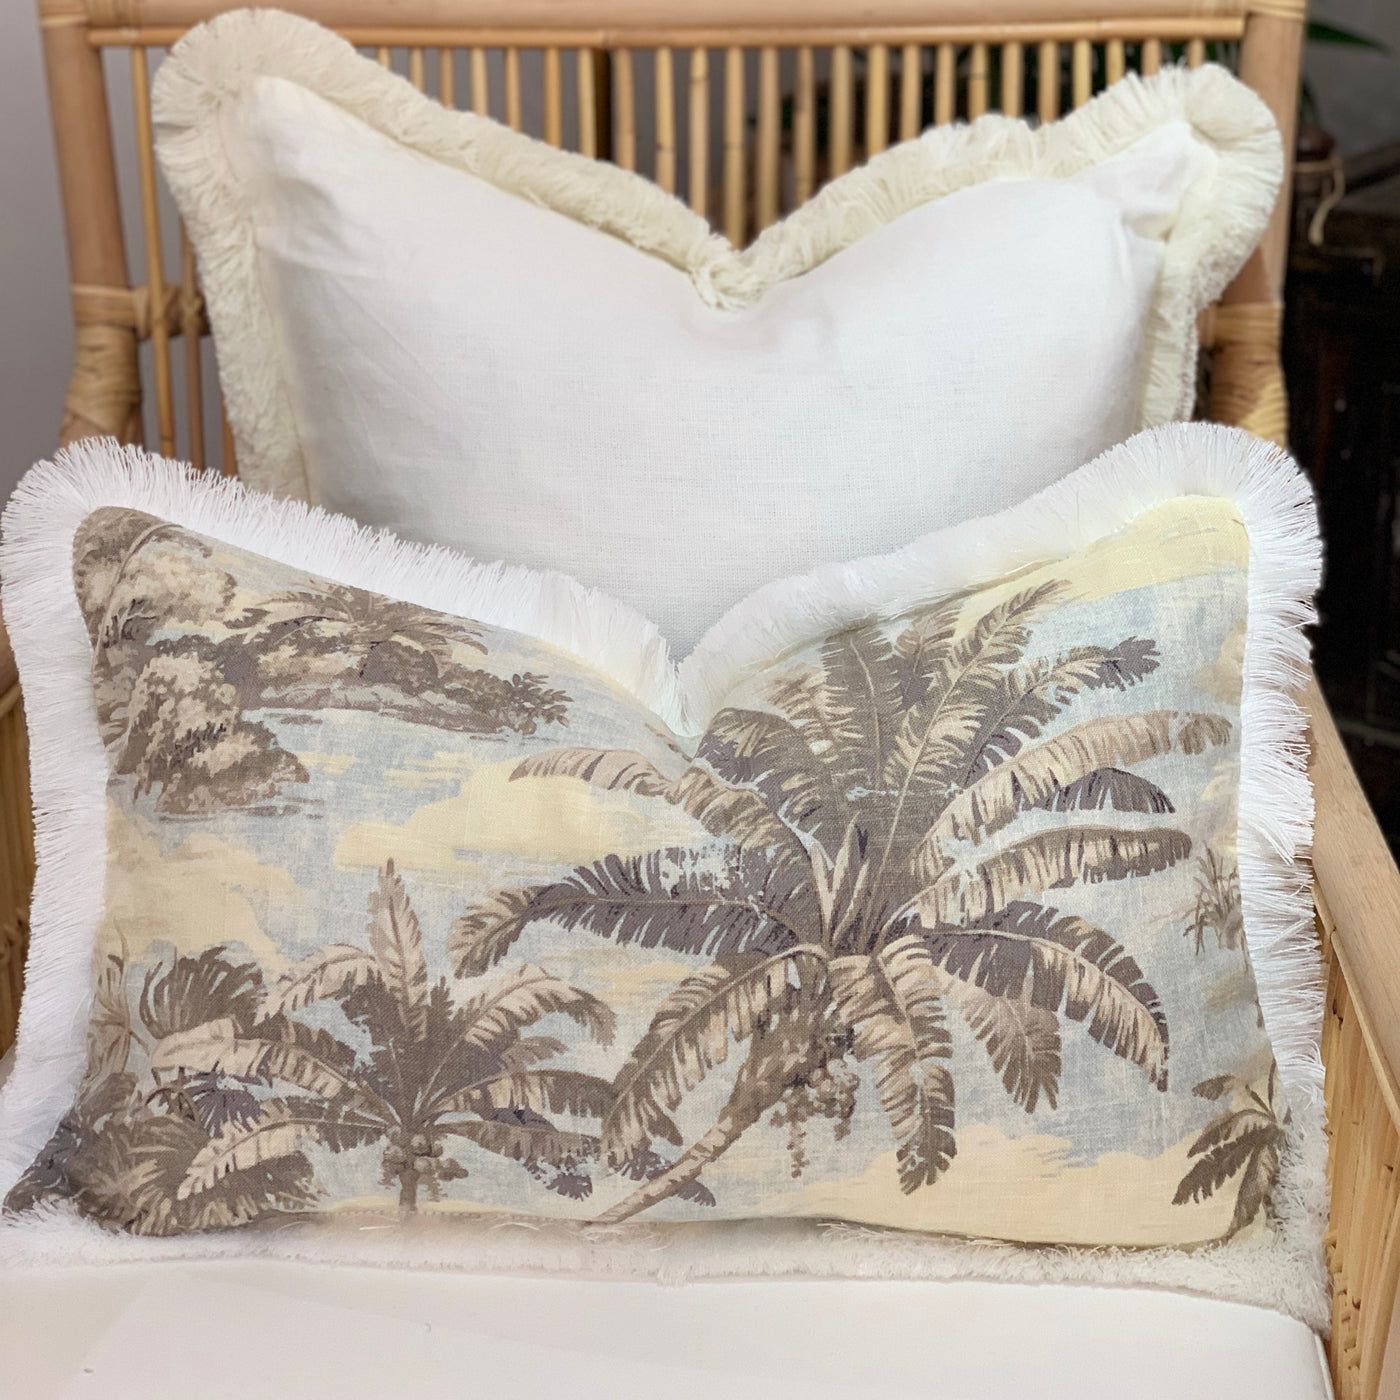 Bahamas Cushion With Fringing 60 x 40